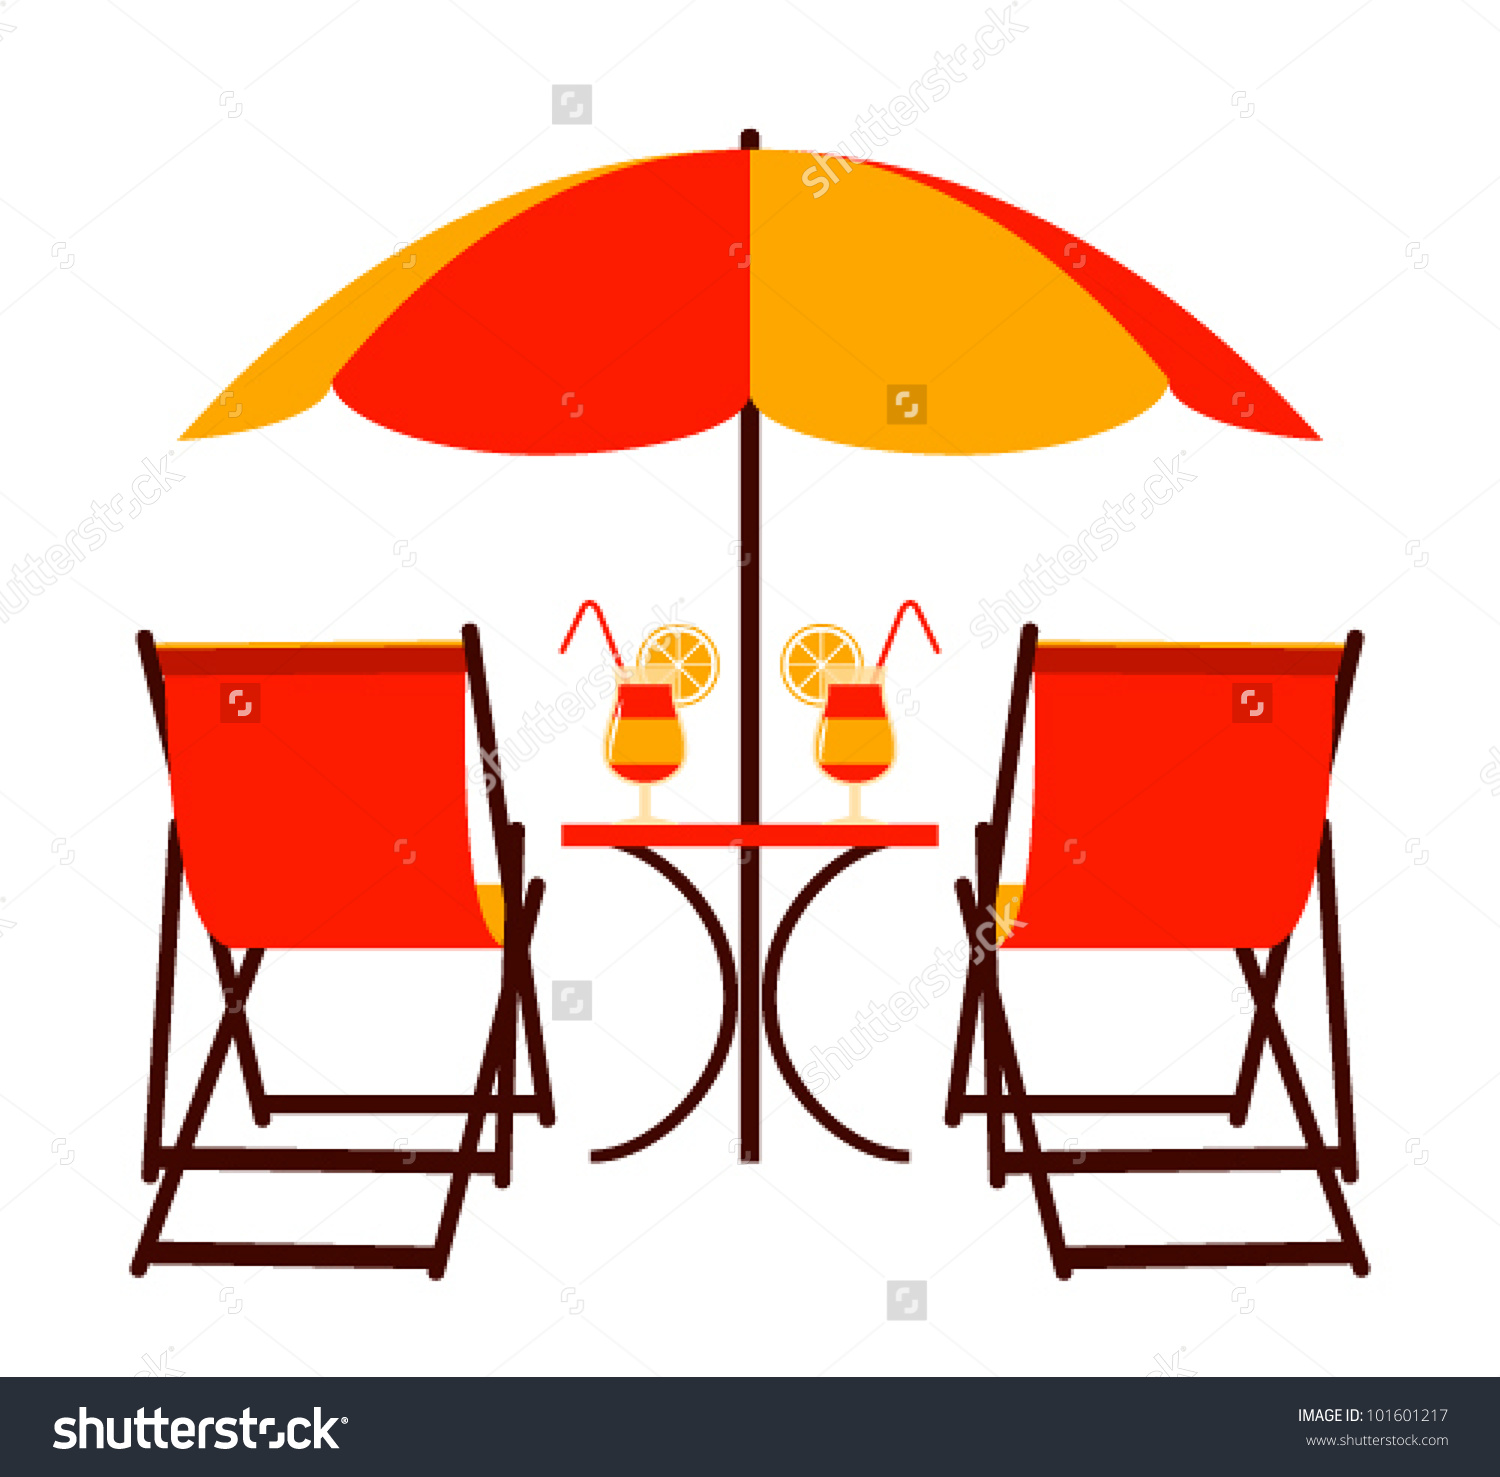 beach chairs and umbrellas pictures pronto power chair parts clipart umbrella clipground